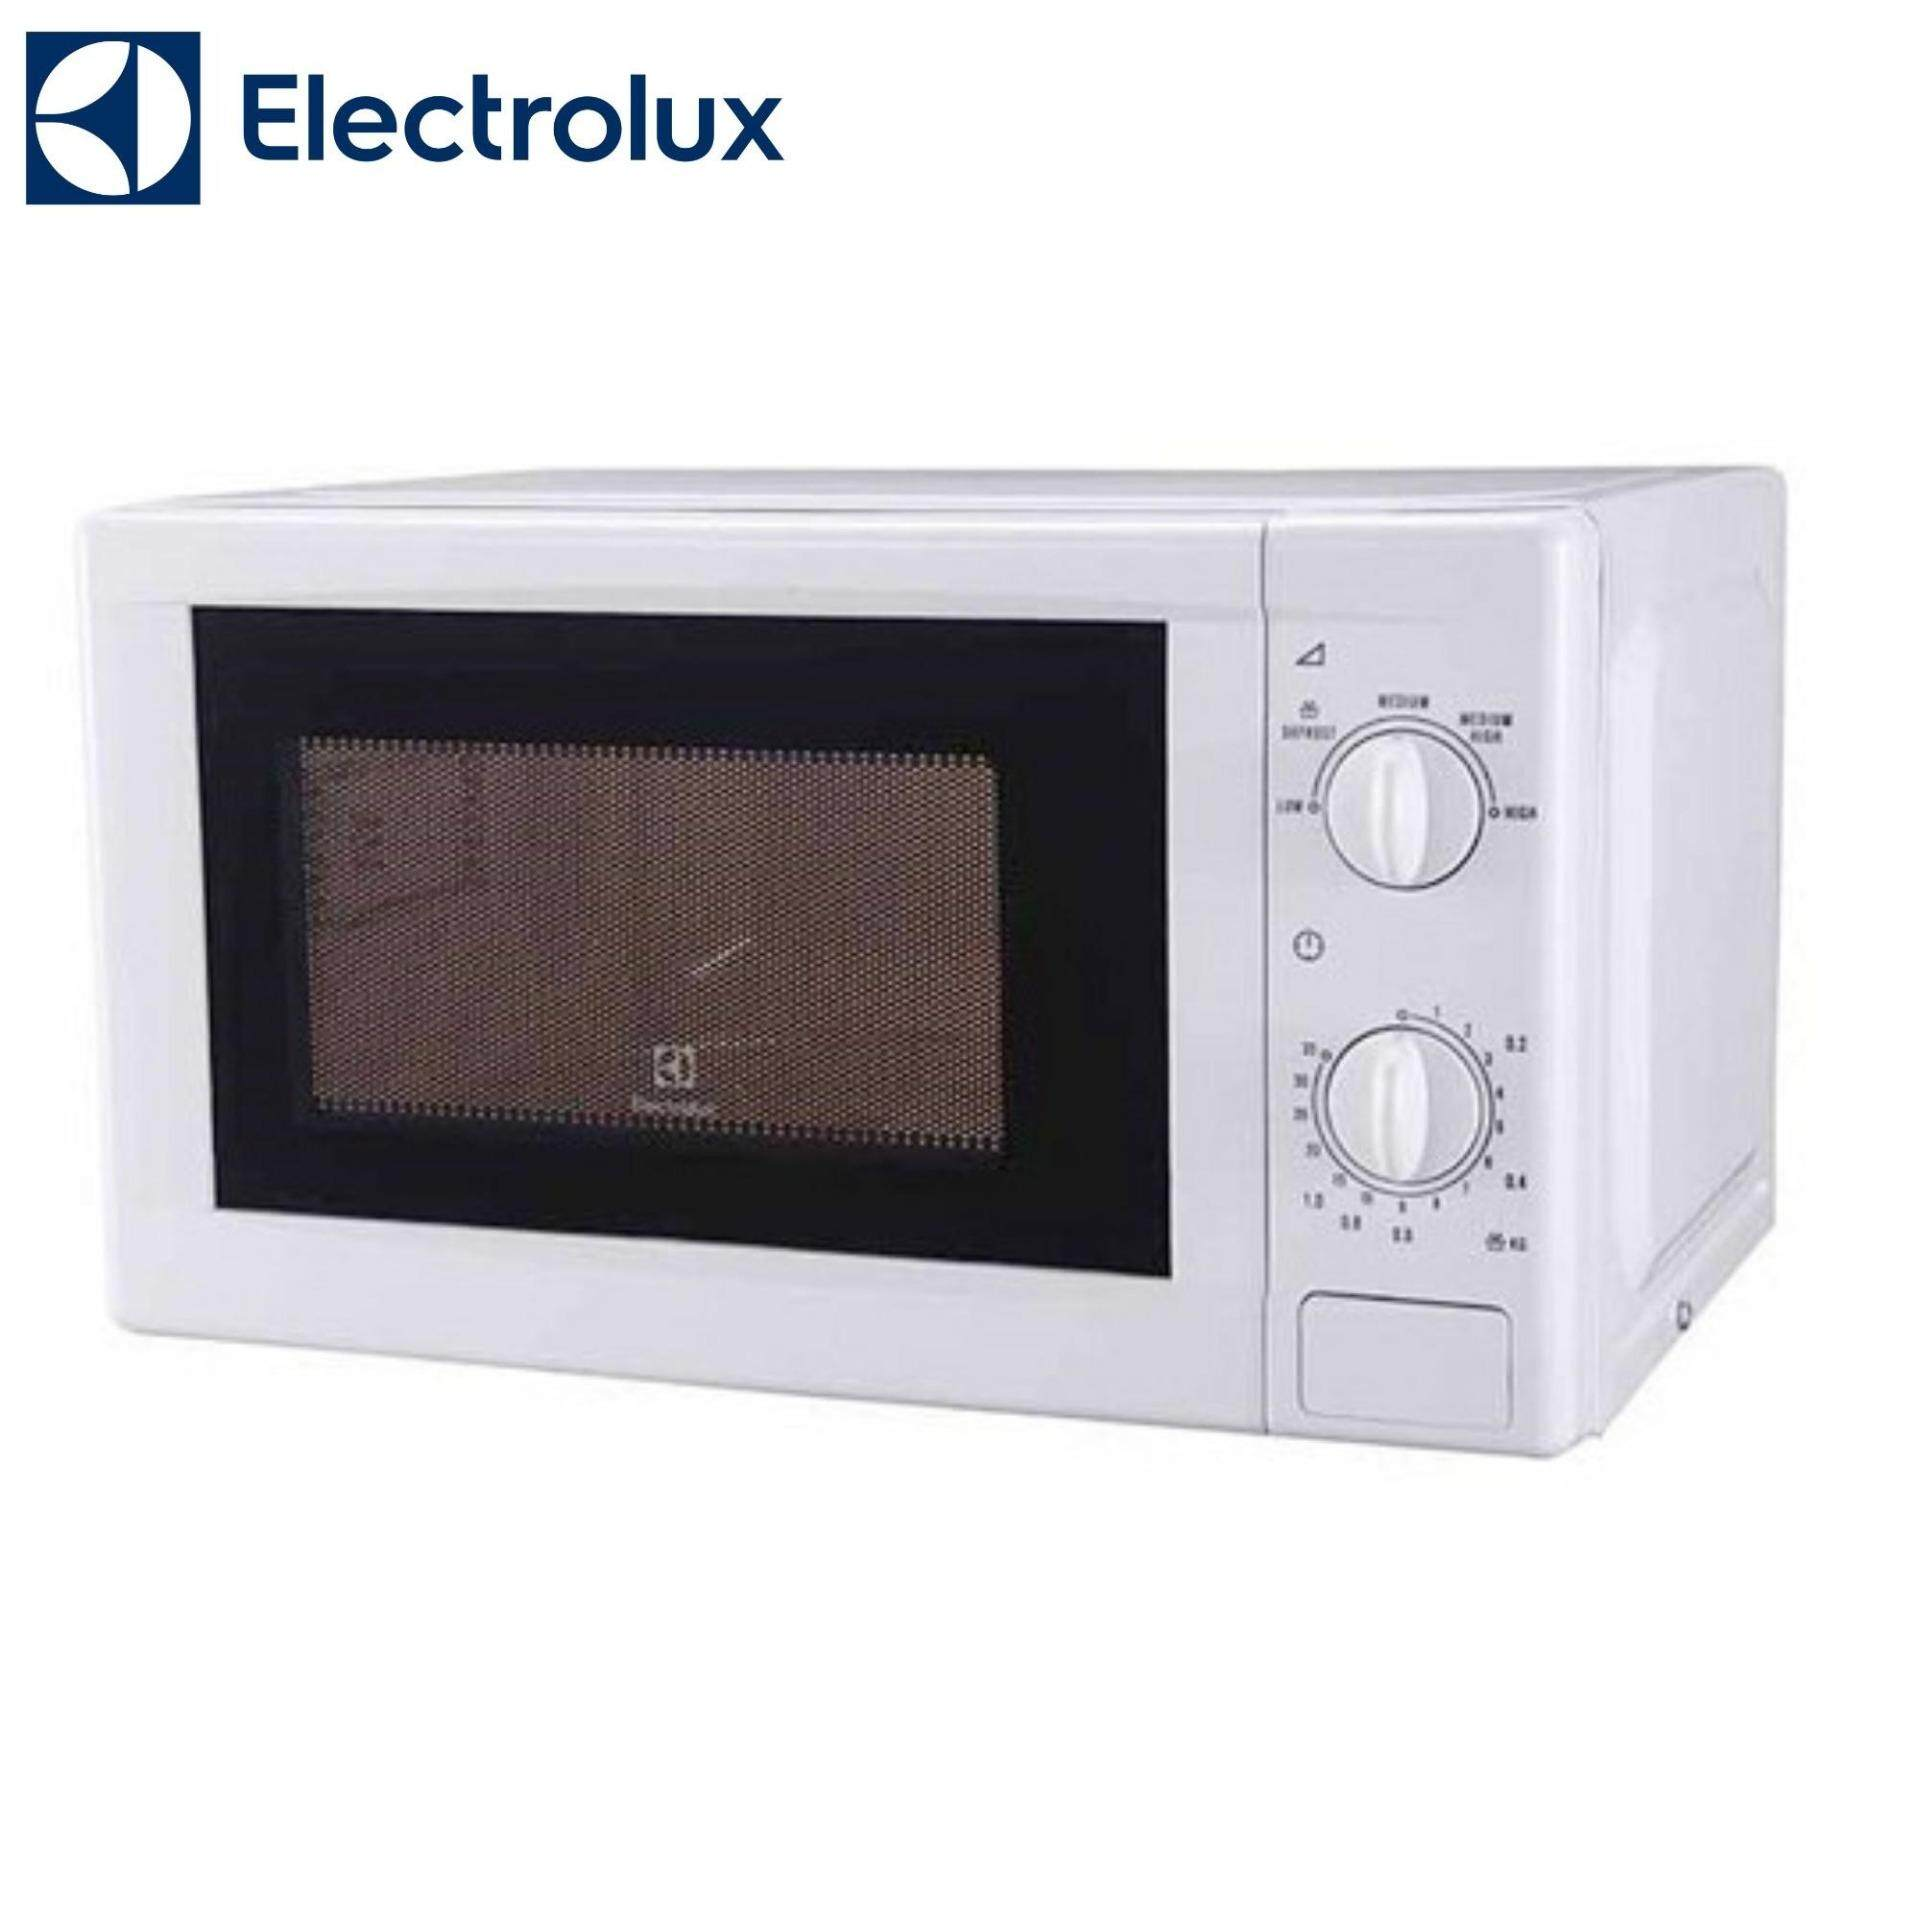 Electrolux Microwave Oven Emm2021mw: Electrolux Home Appliances With Best Price AT Lazada